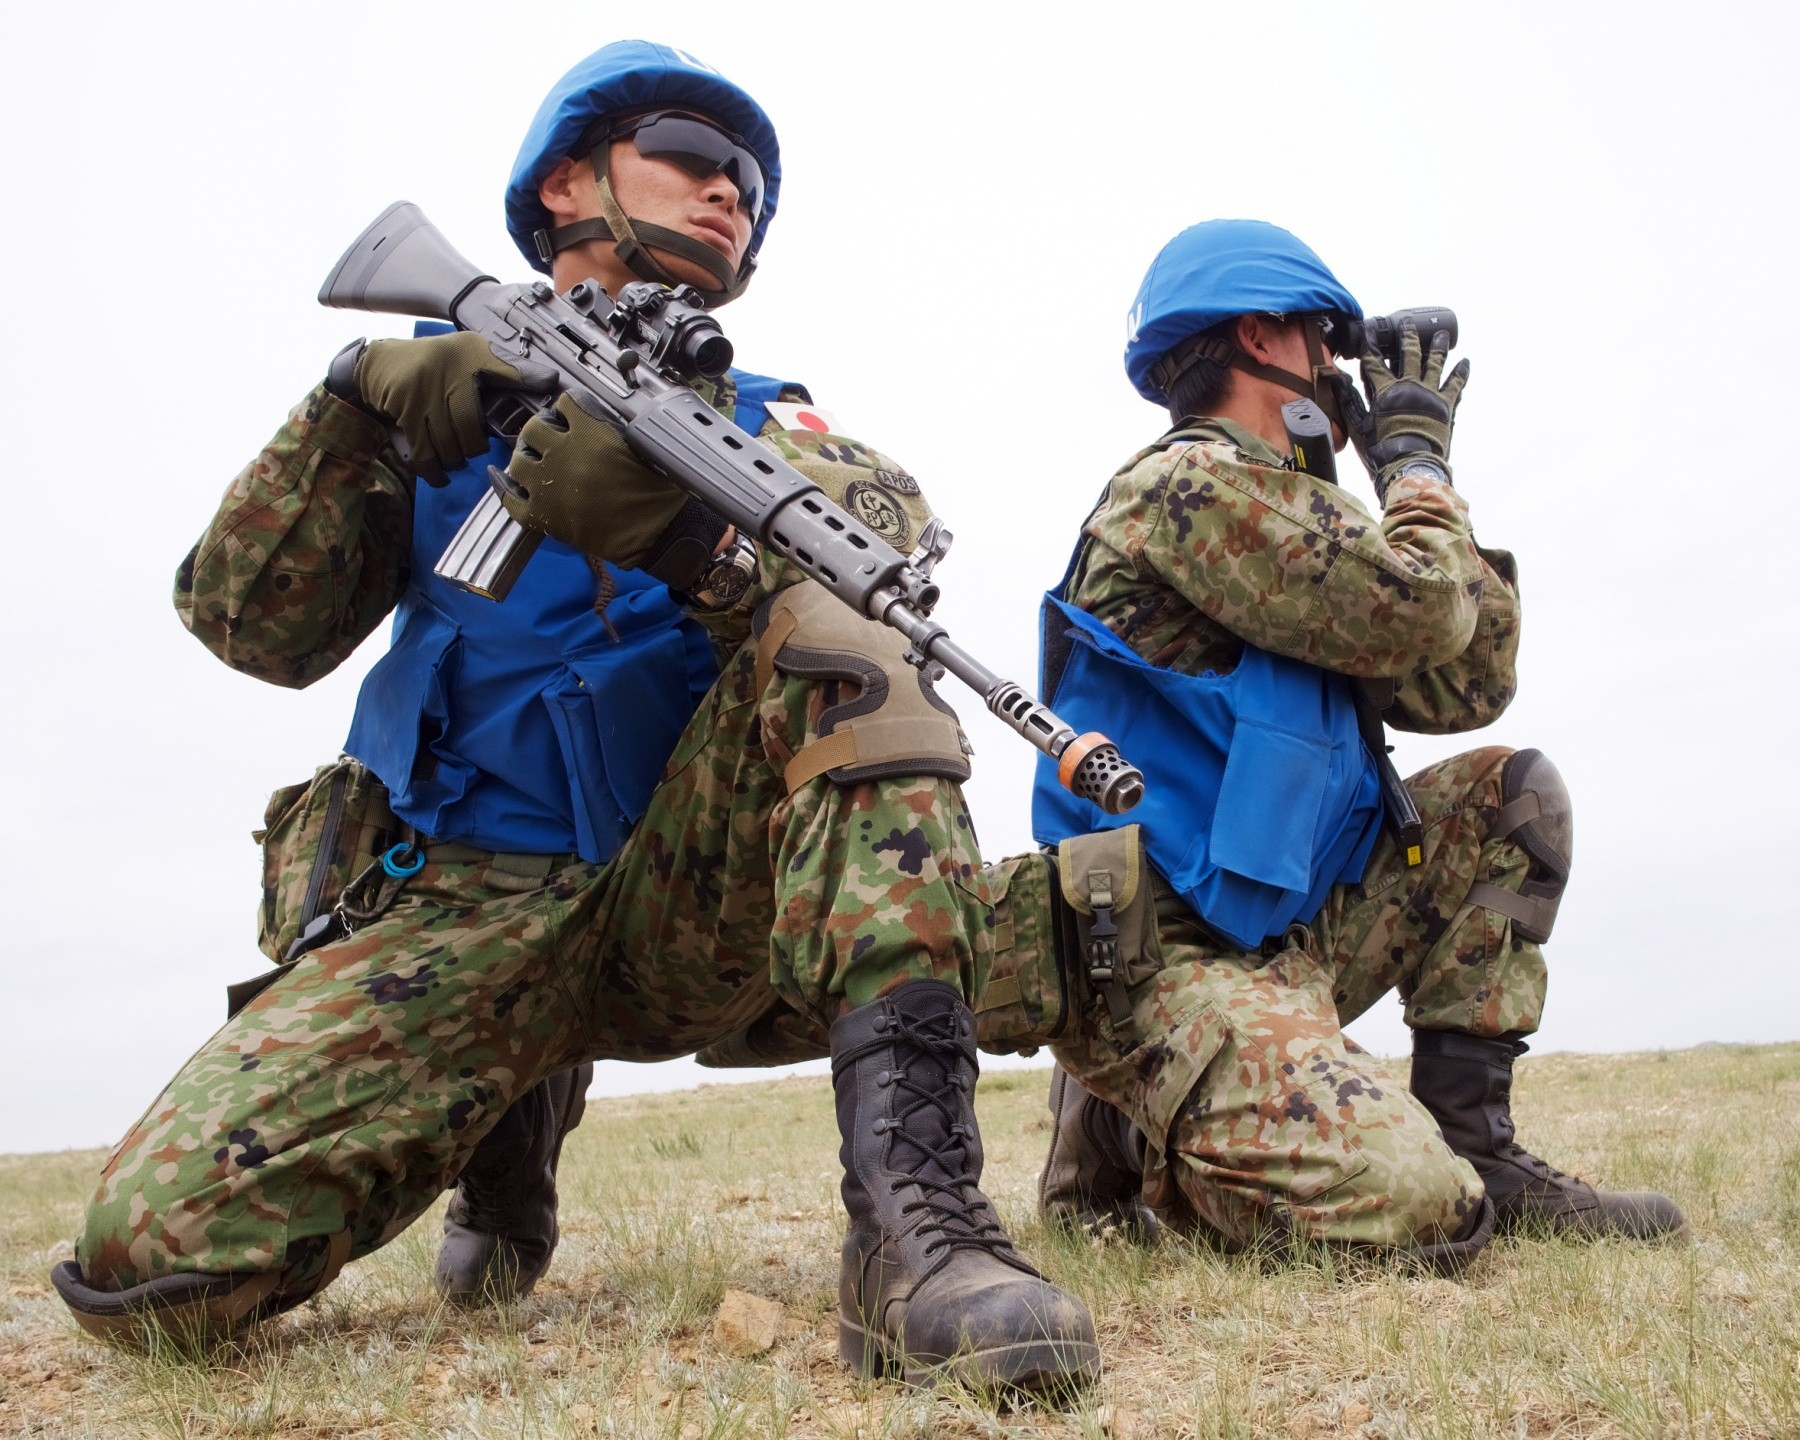 Mongolian Armed Forces host Khaan Quest 2018 peacekeeping ...